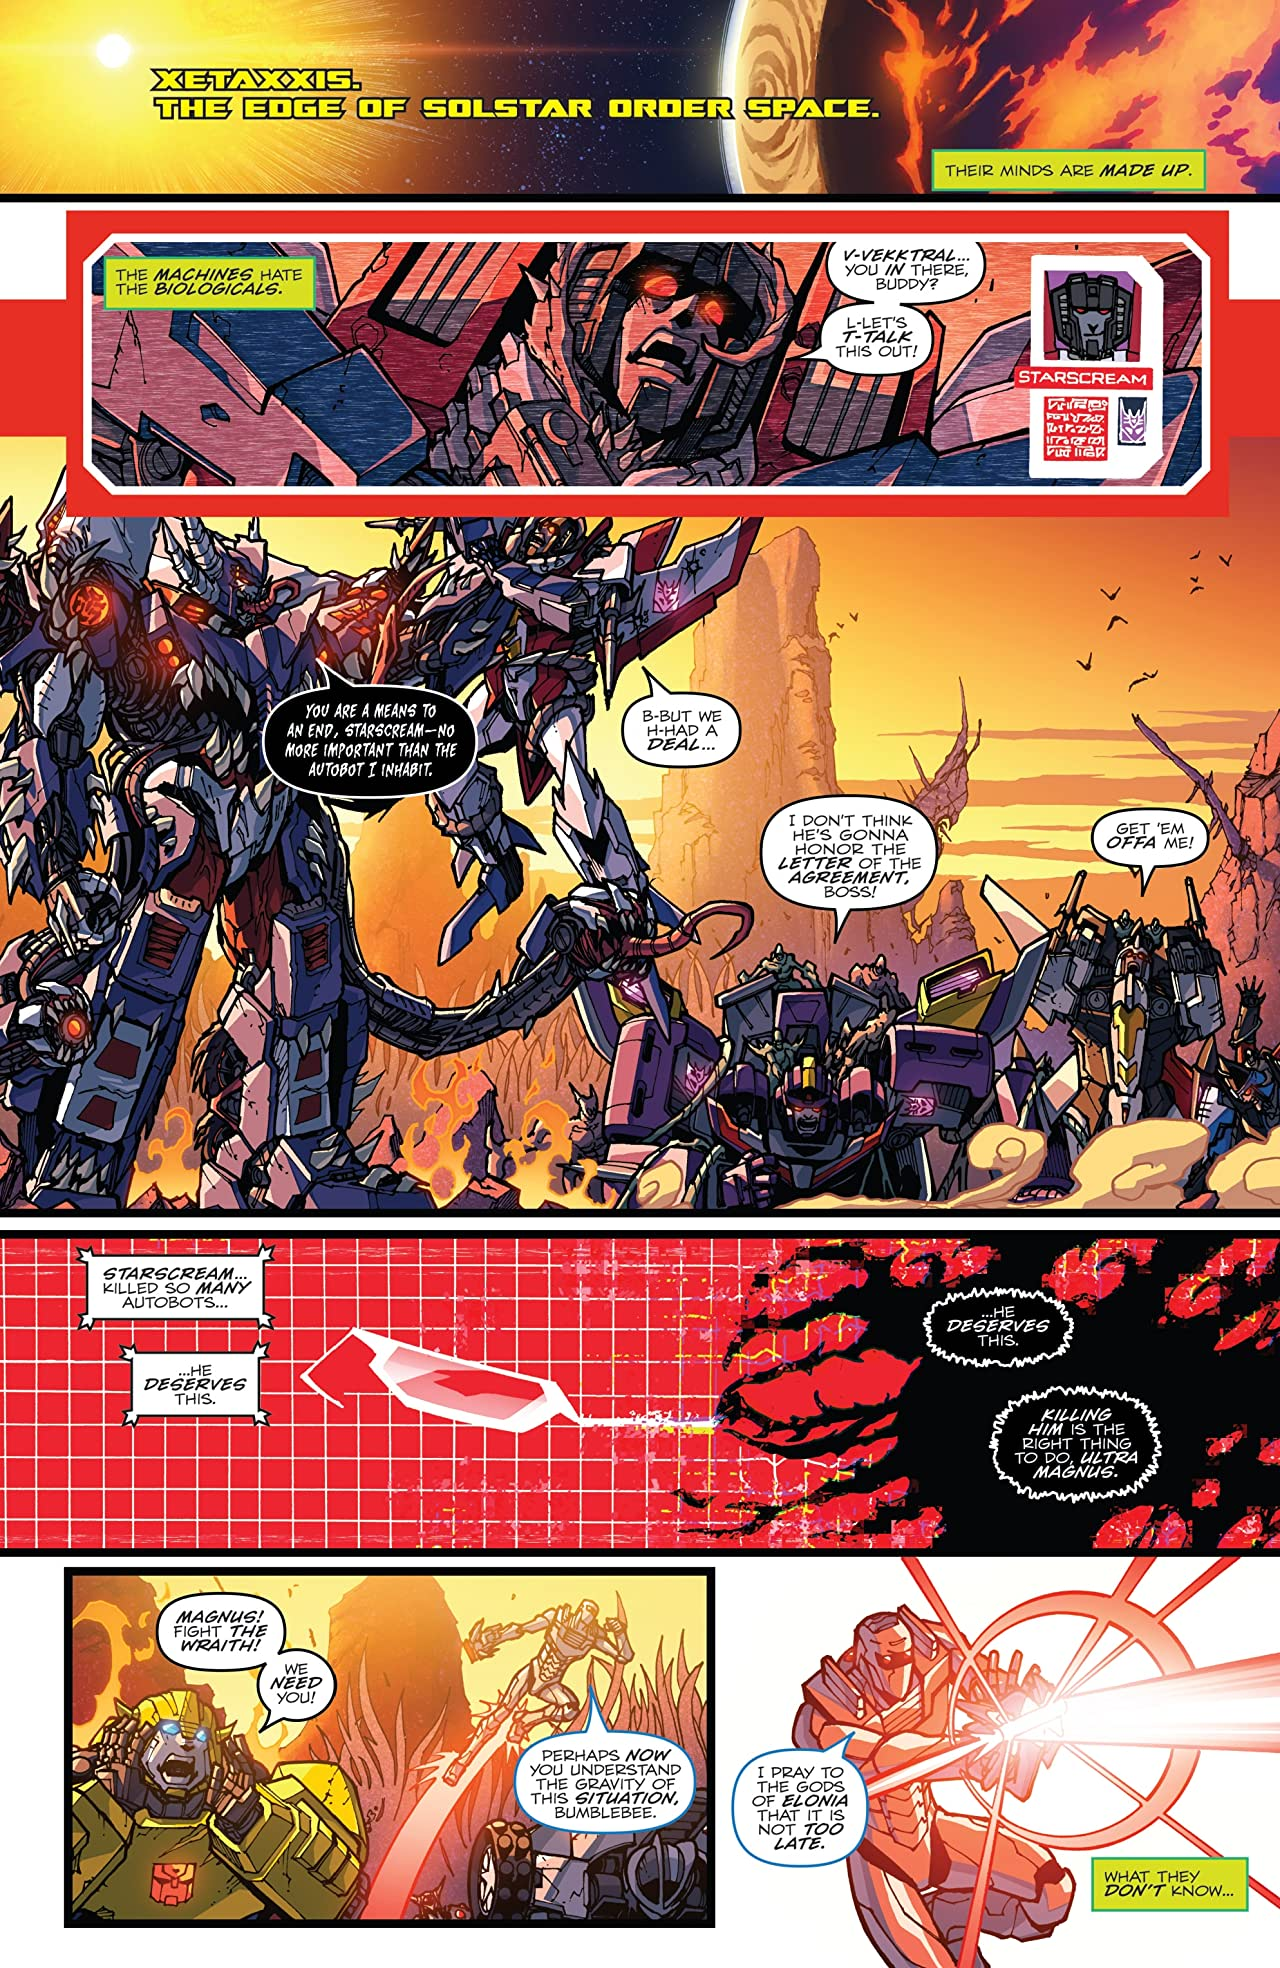 Rom vs. Transformers: Shining Armor #5